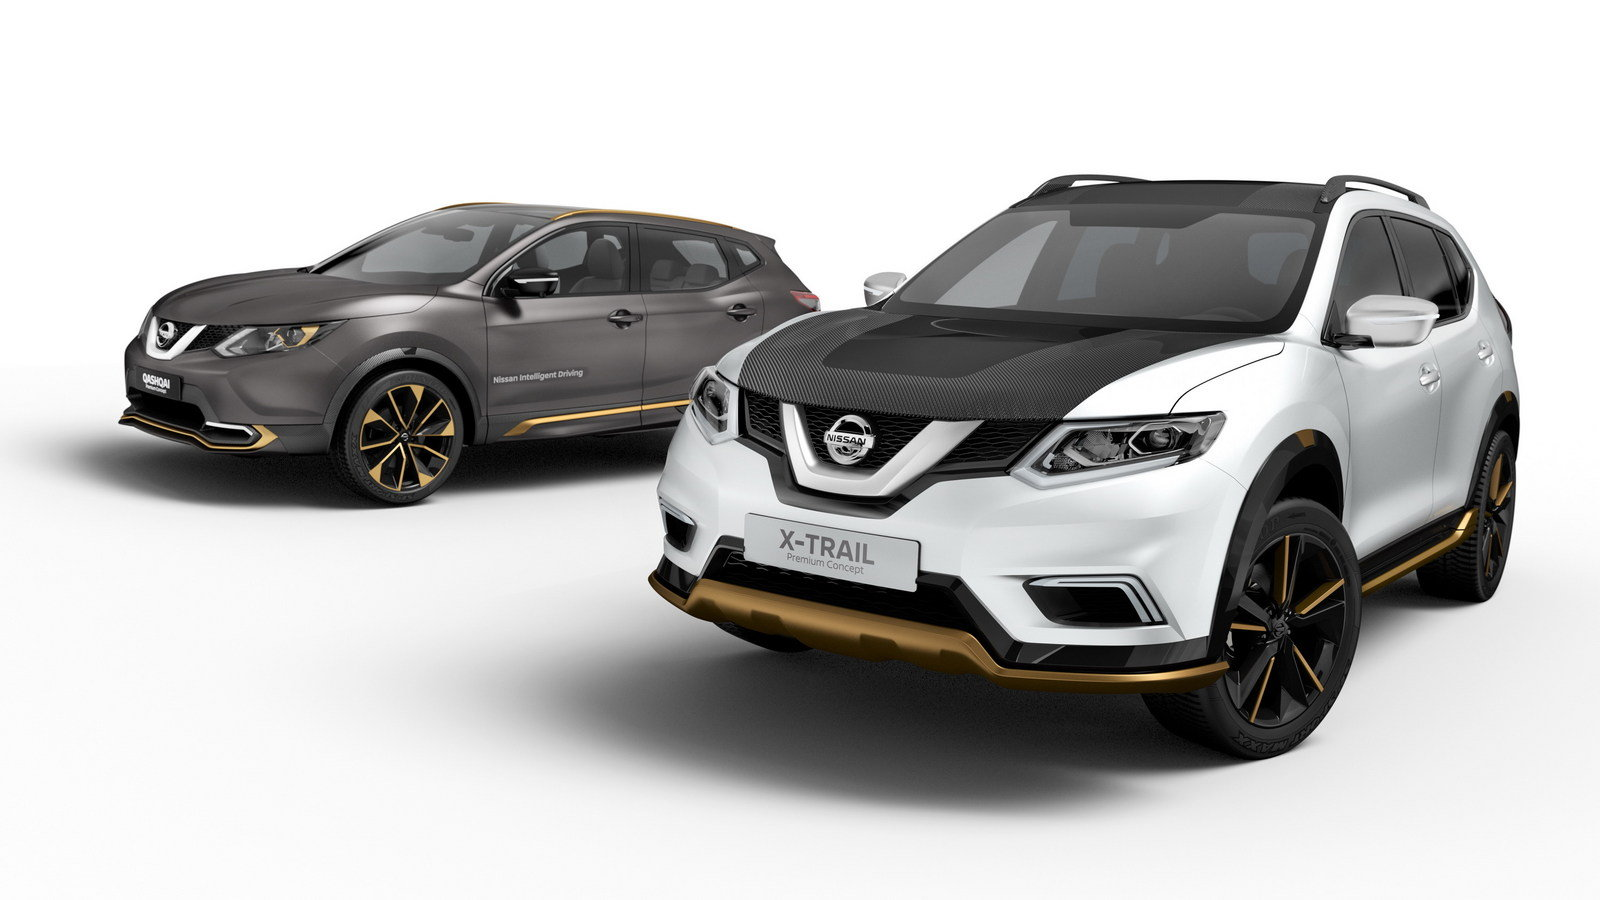 2016 nissan x trail premium concept picture 667143 car review top speed. Black Bedroom Furniture Sets. Home Design Ideas